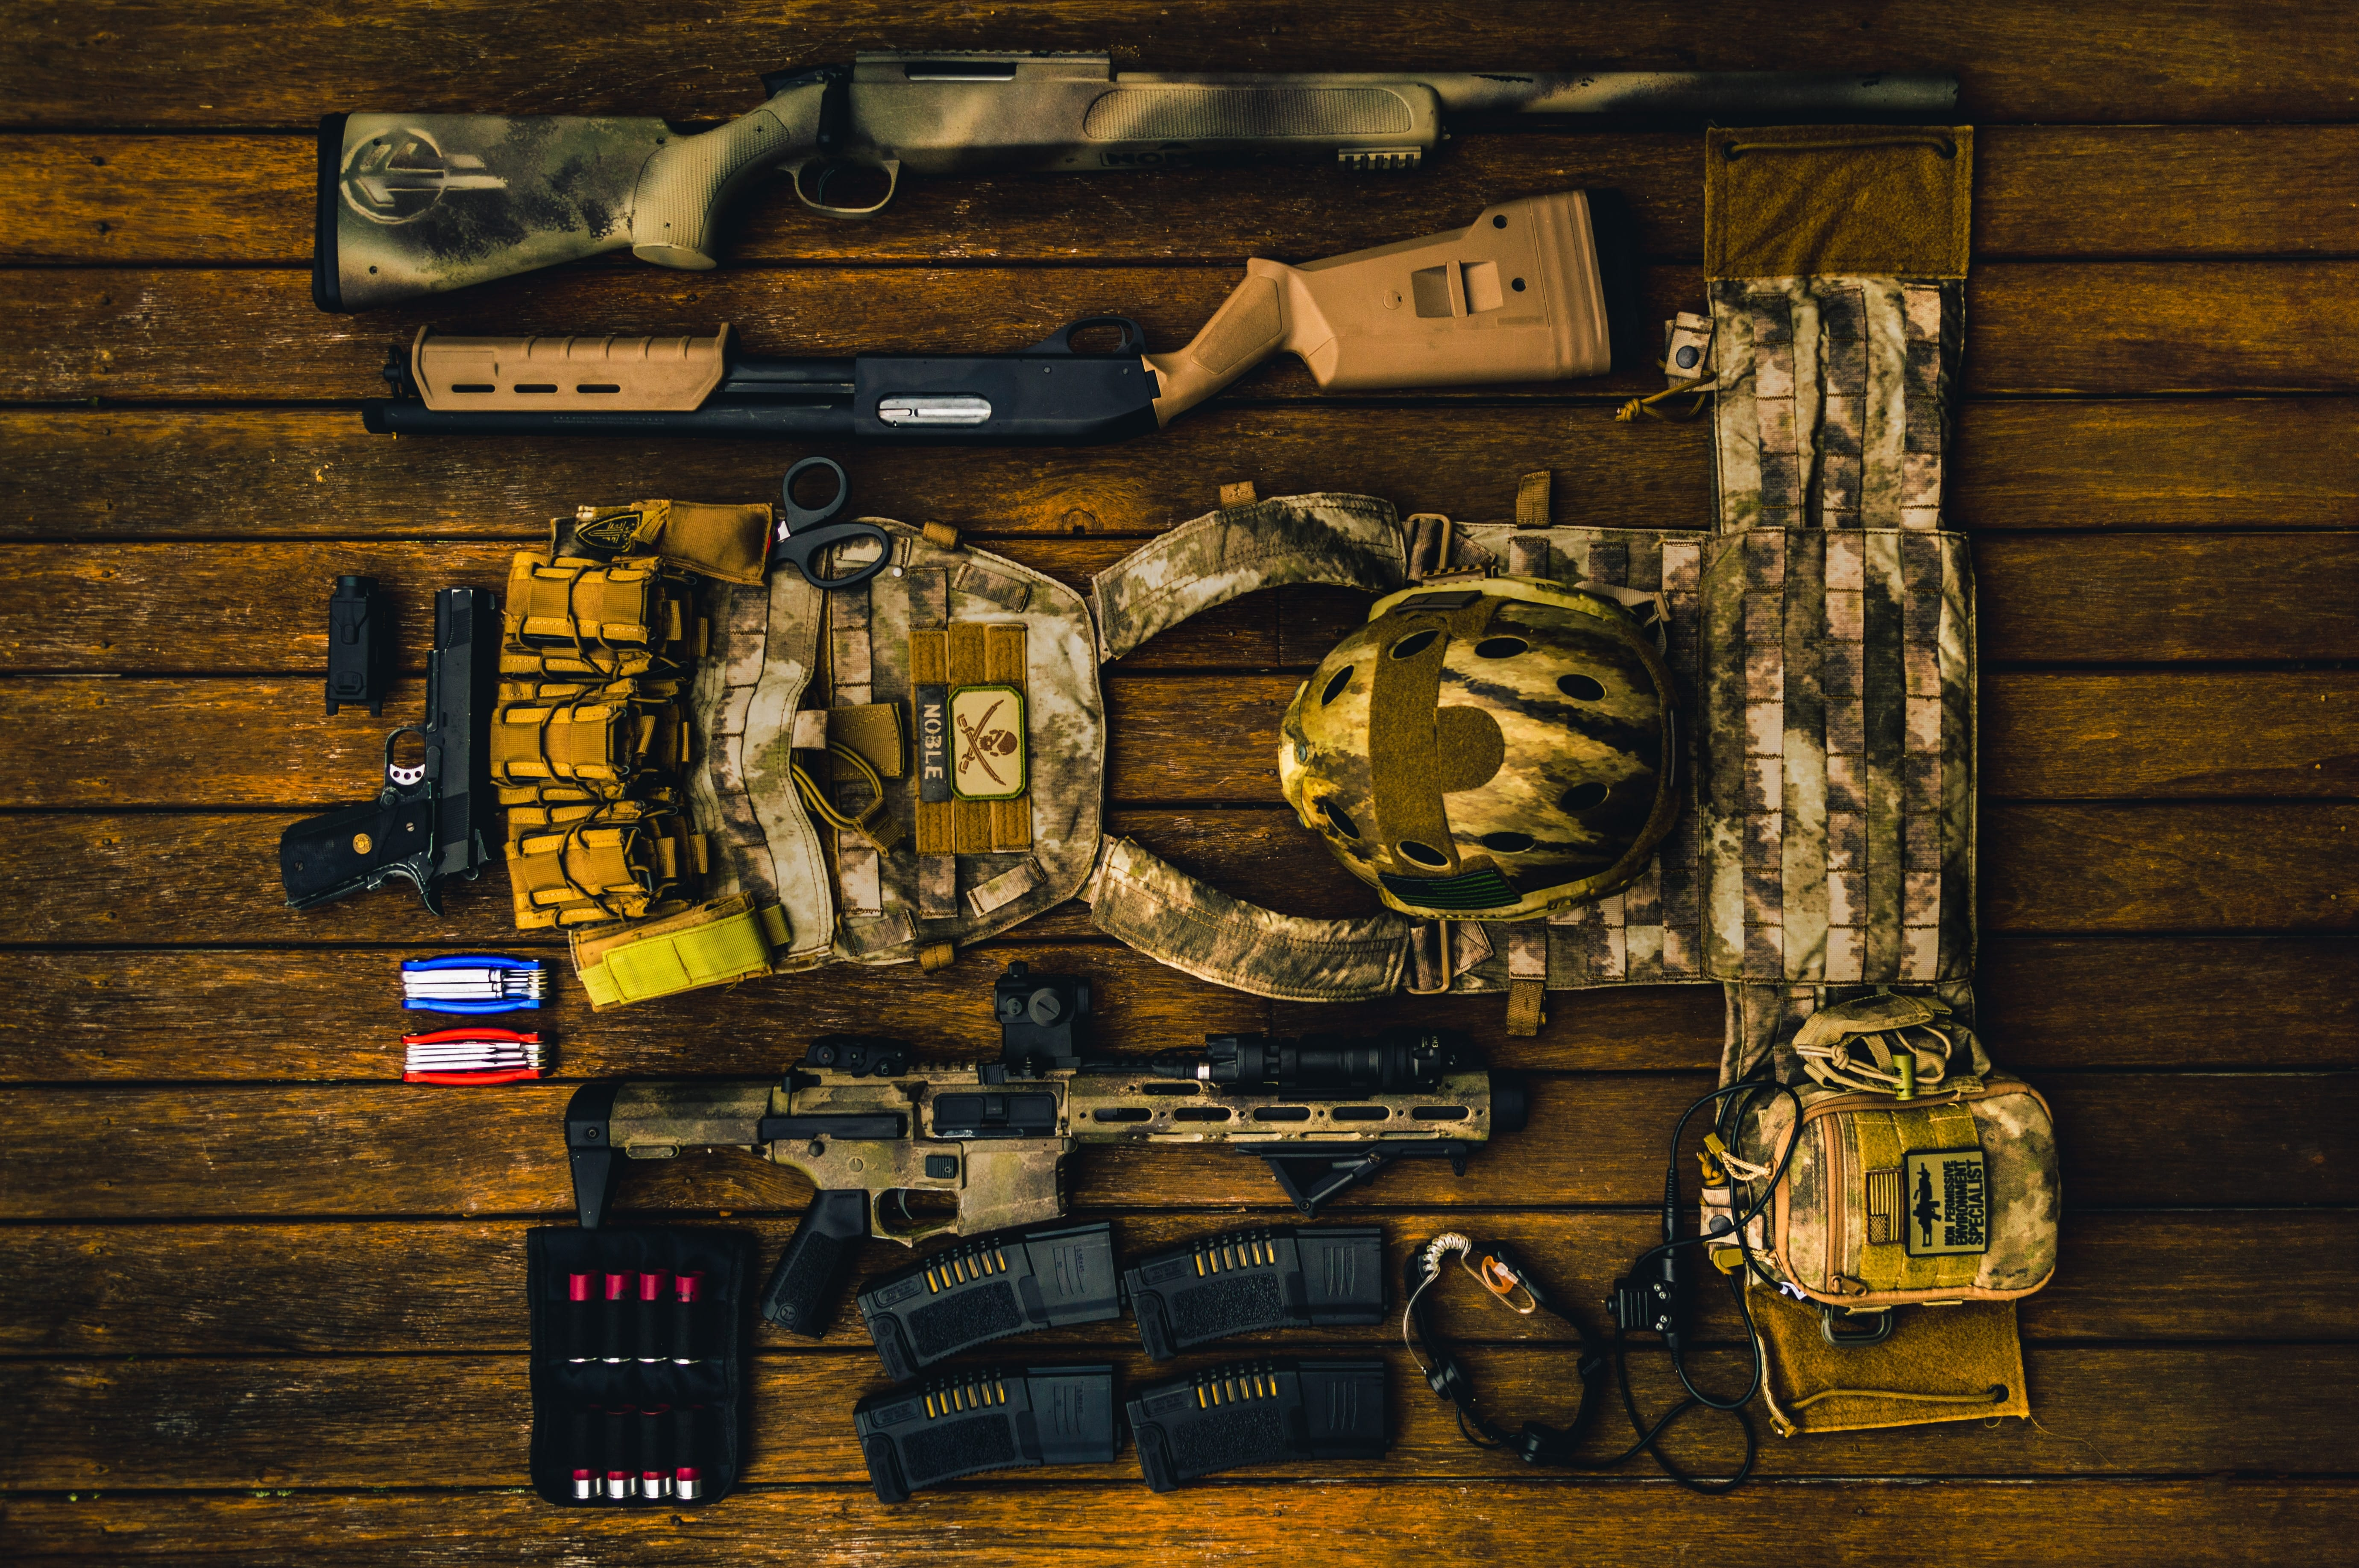 Brown and beige army gear set on brown surface; image by CMDR Shane, via Unsplash.com.